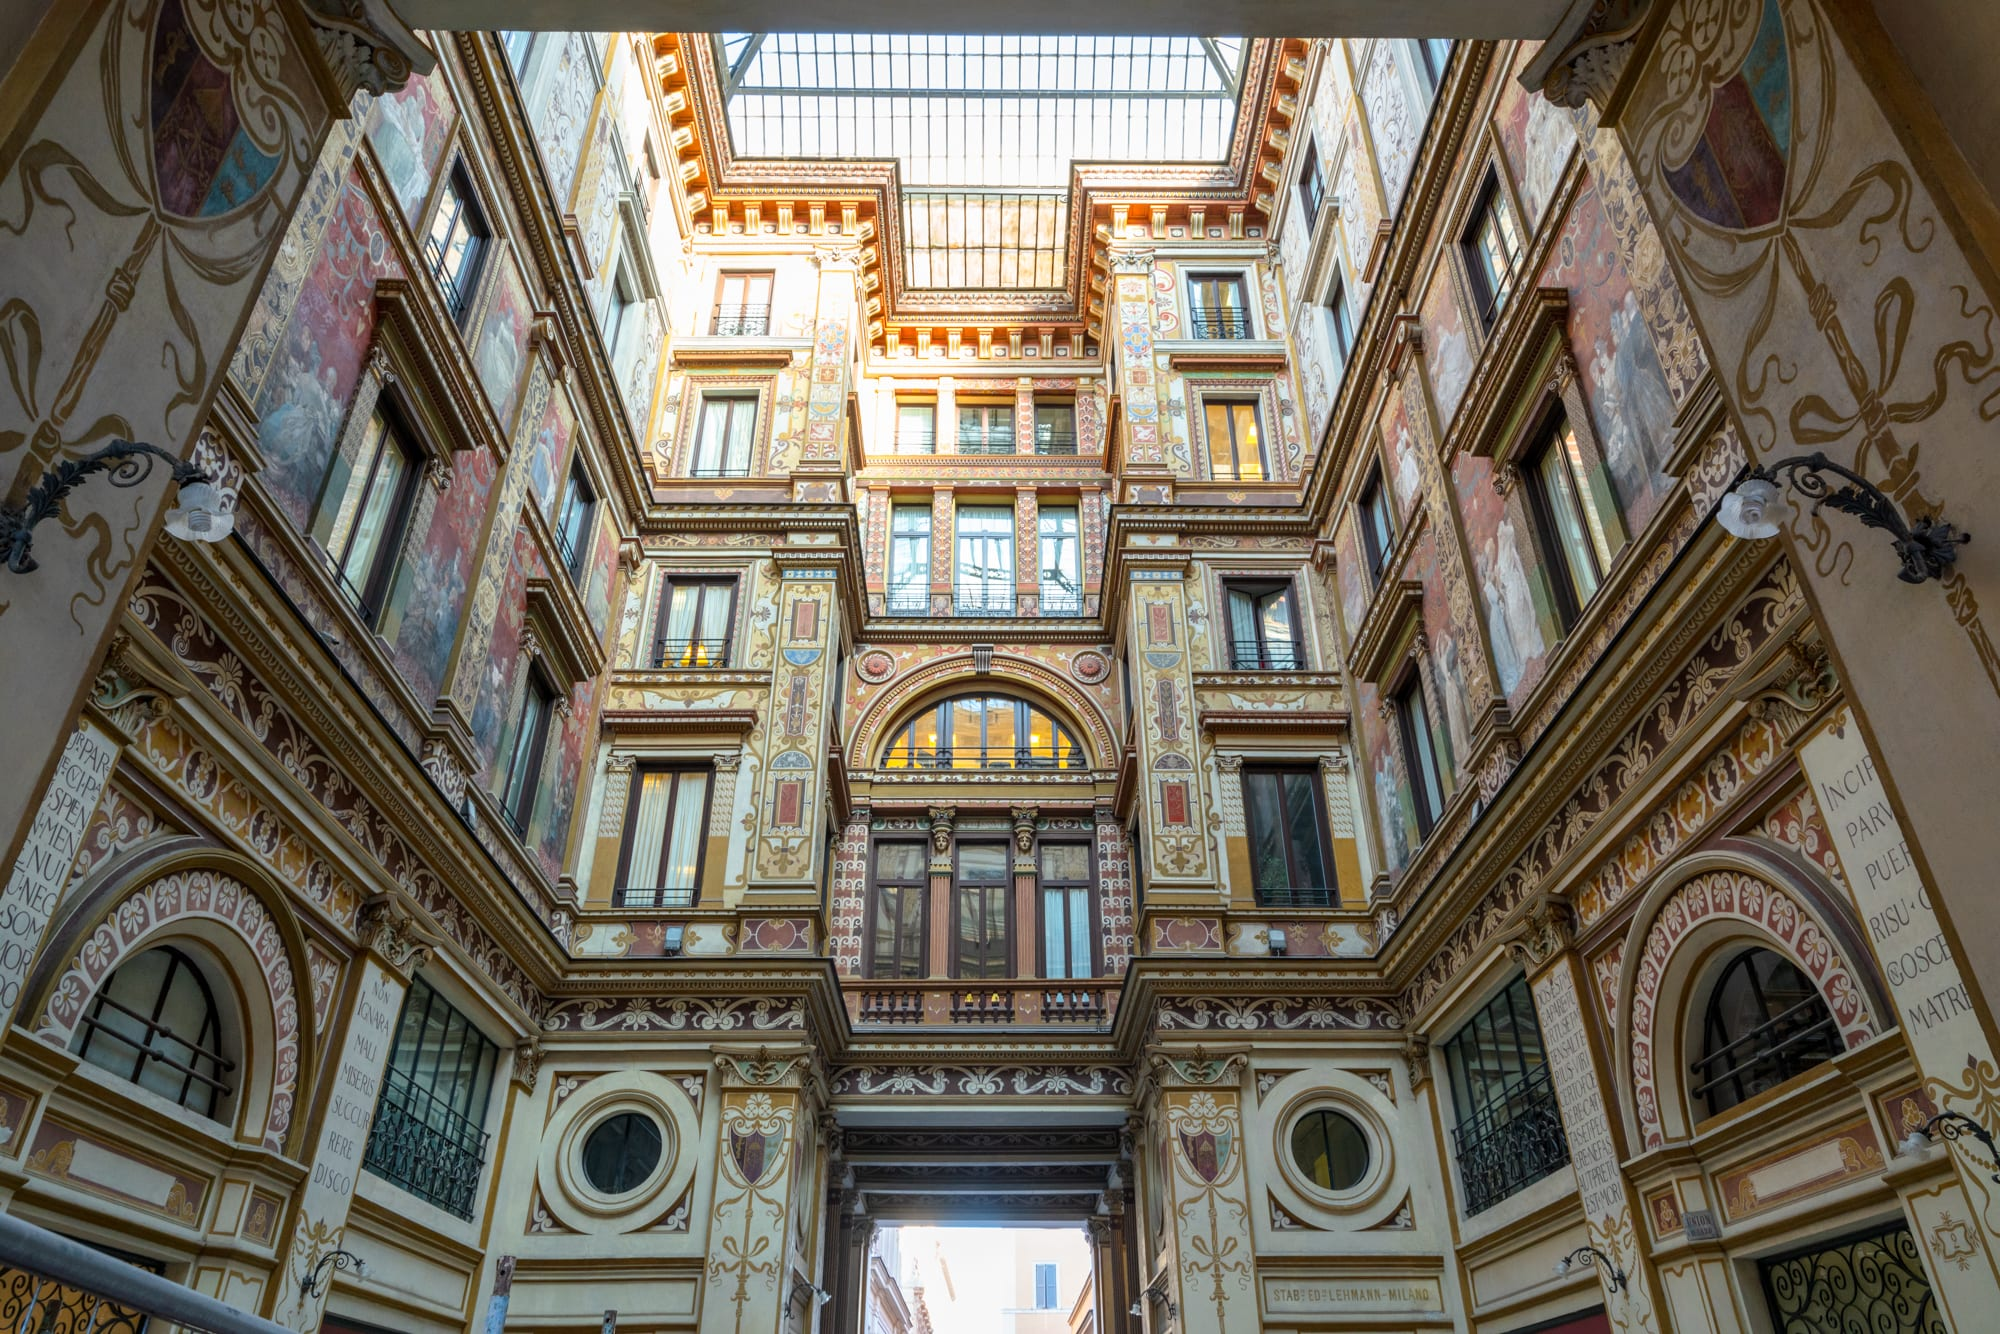 Rome off the beaten path: view of Galleria Sciarra looking up